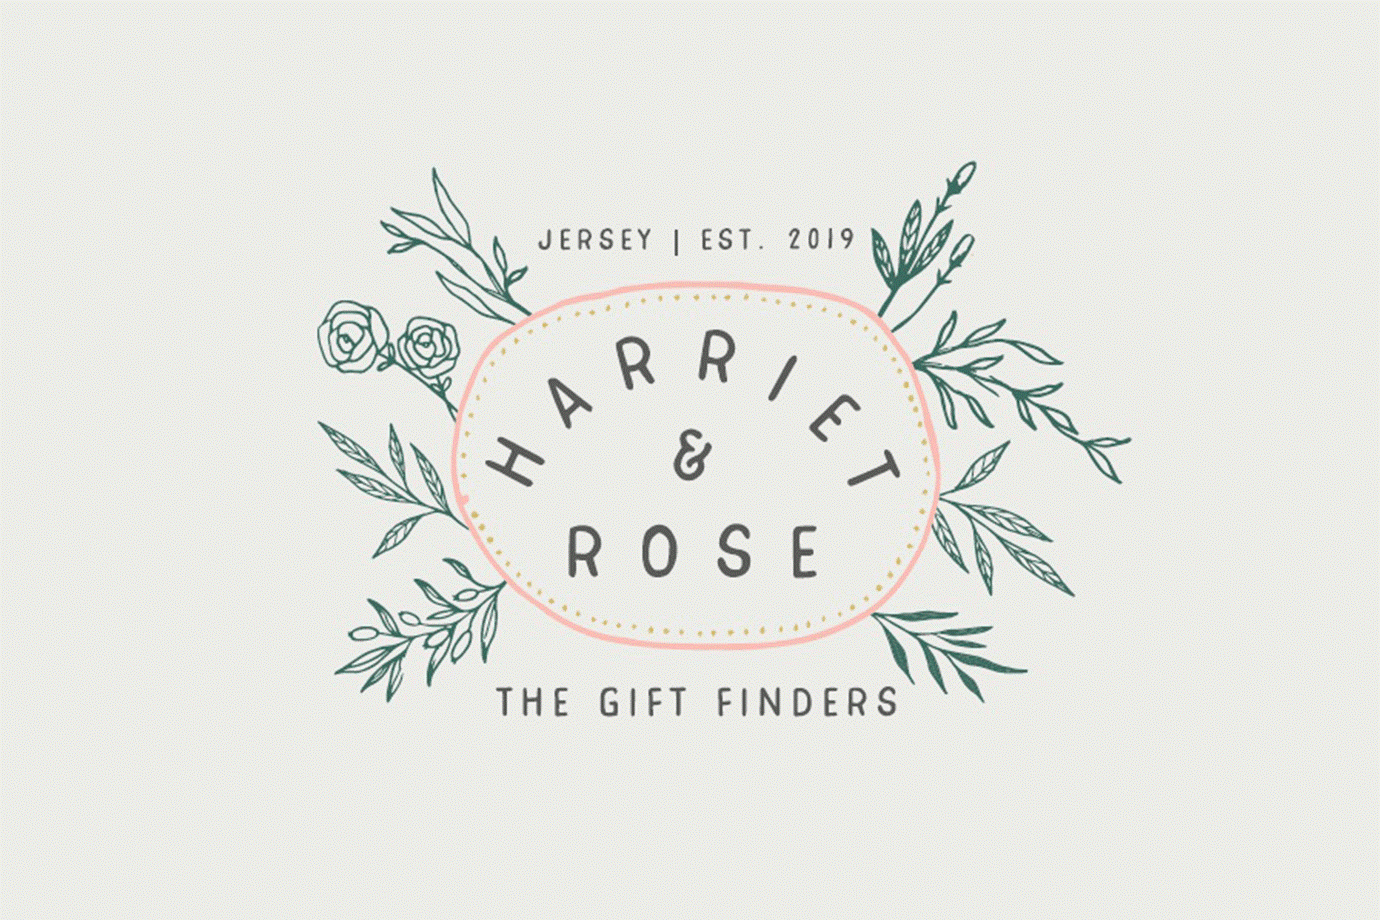 Harriet and Rose